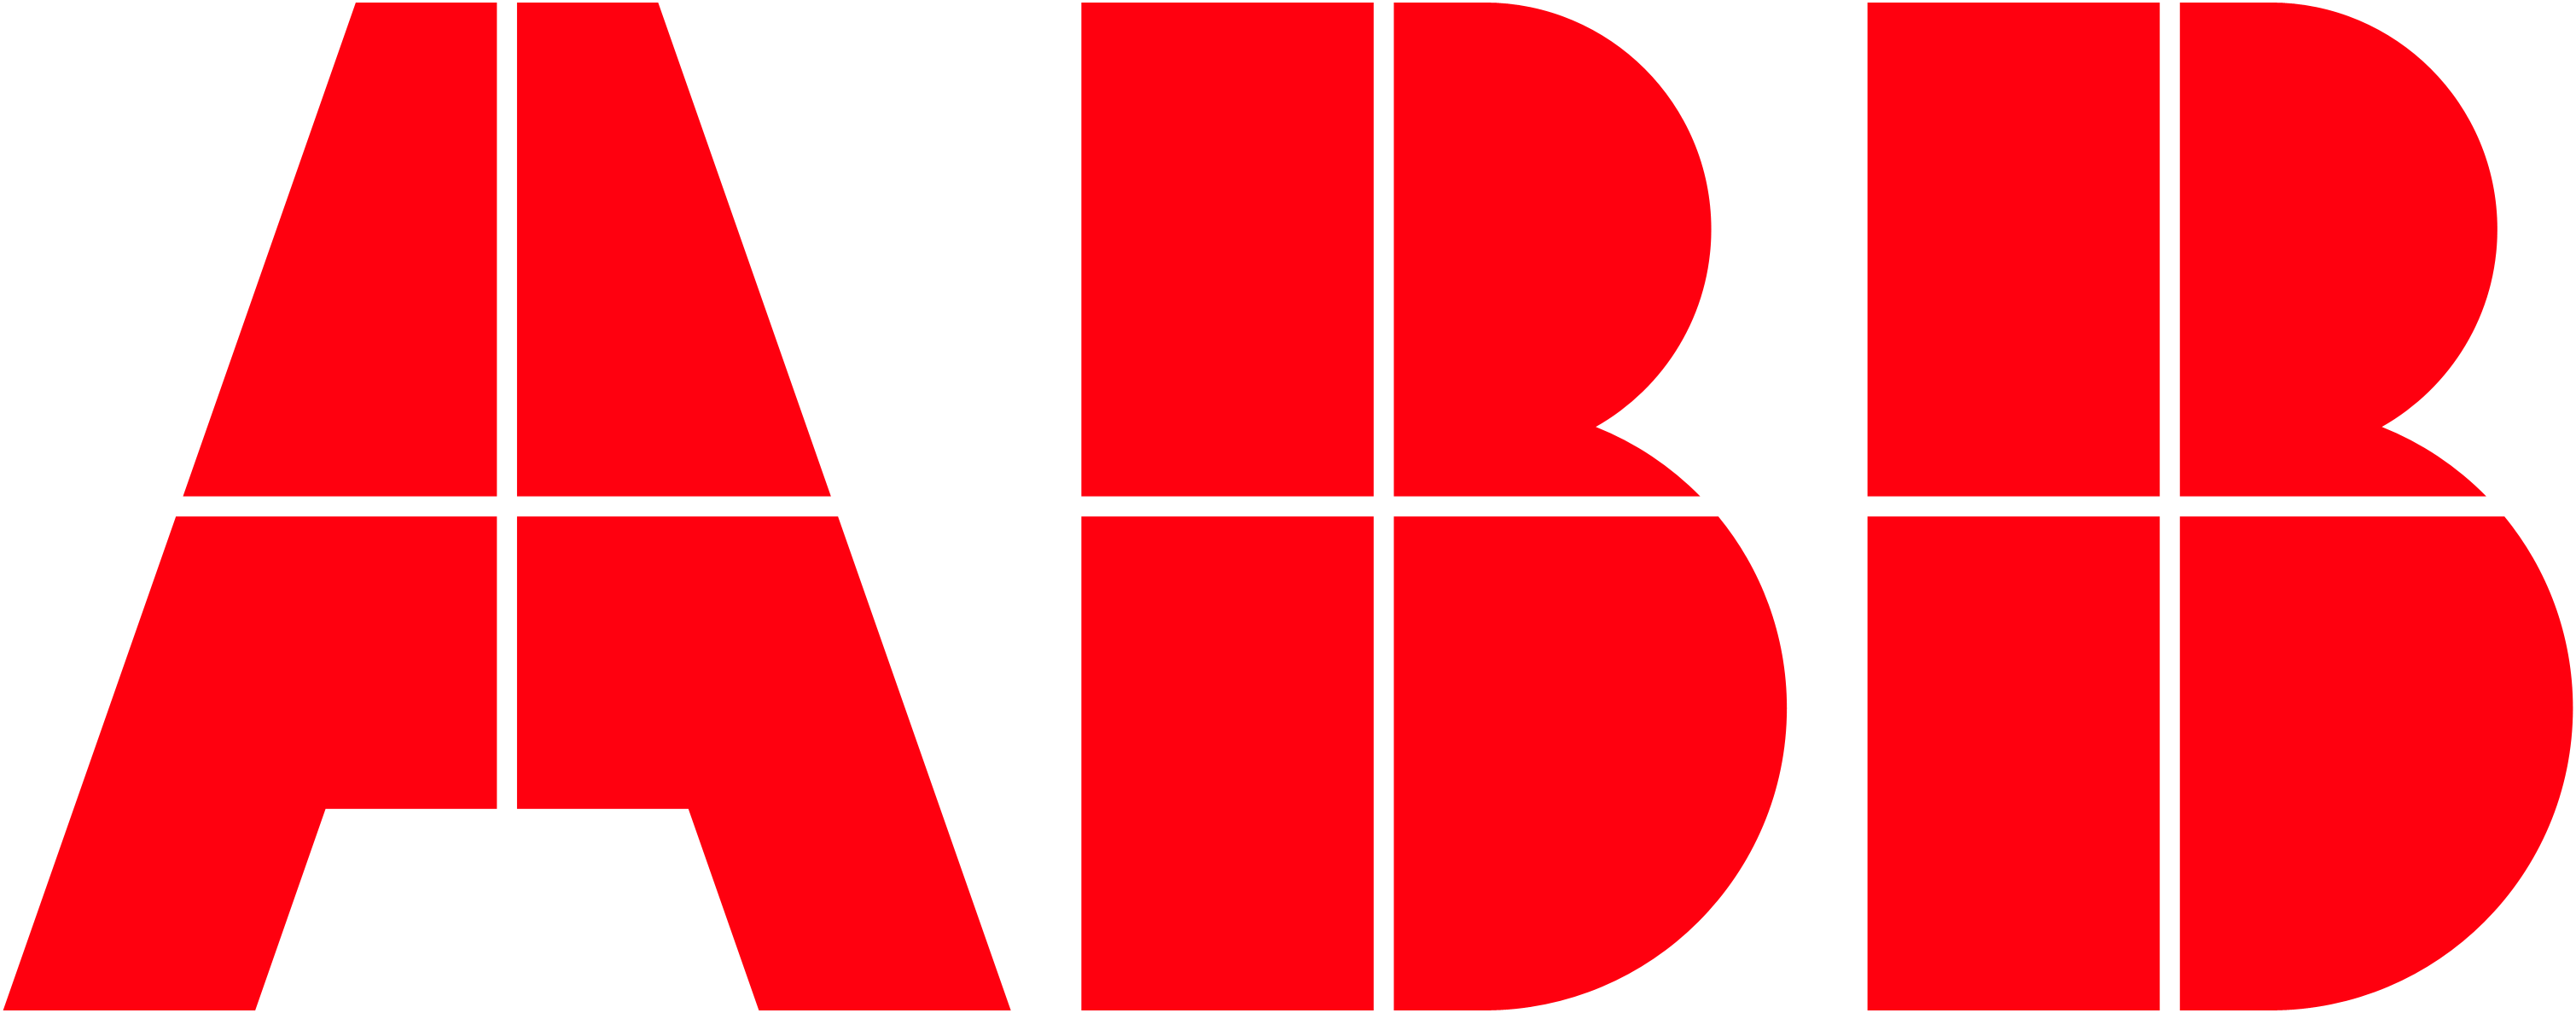 ABB Network Control Solutions